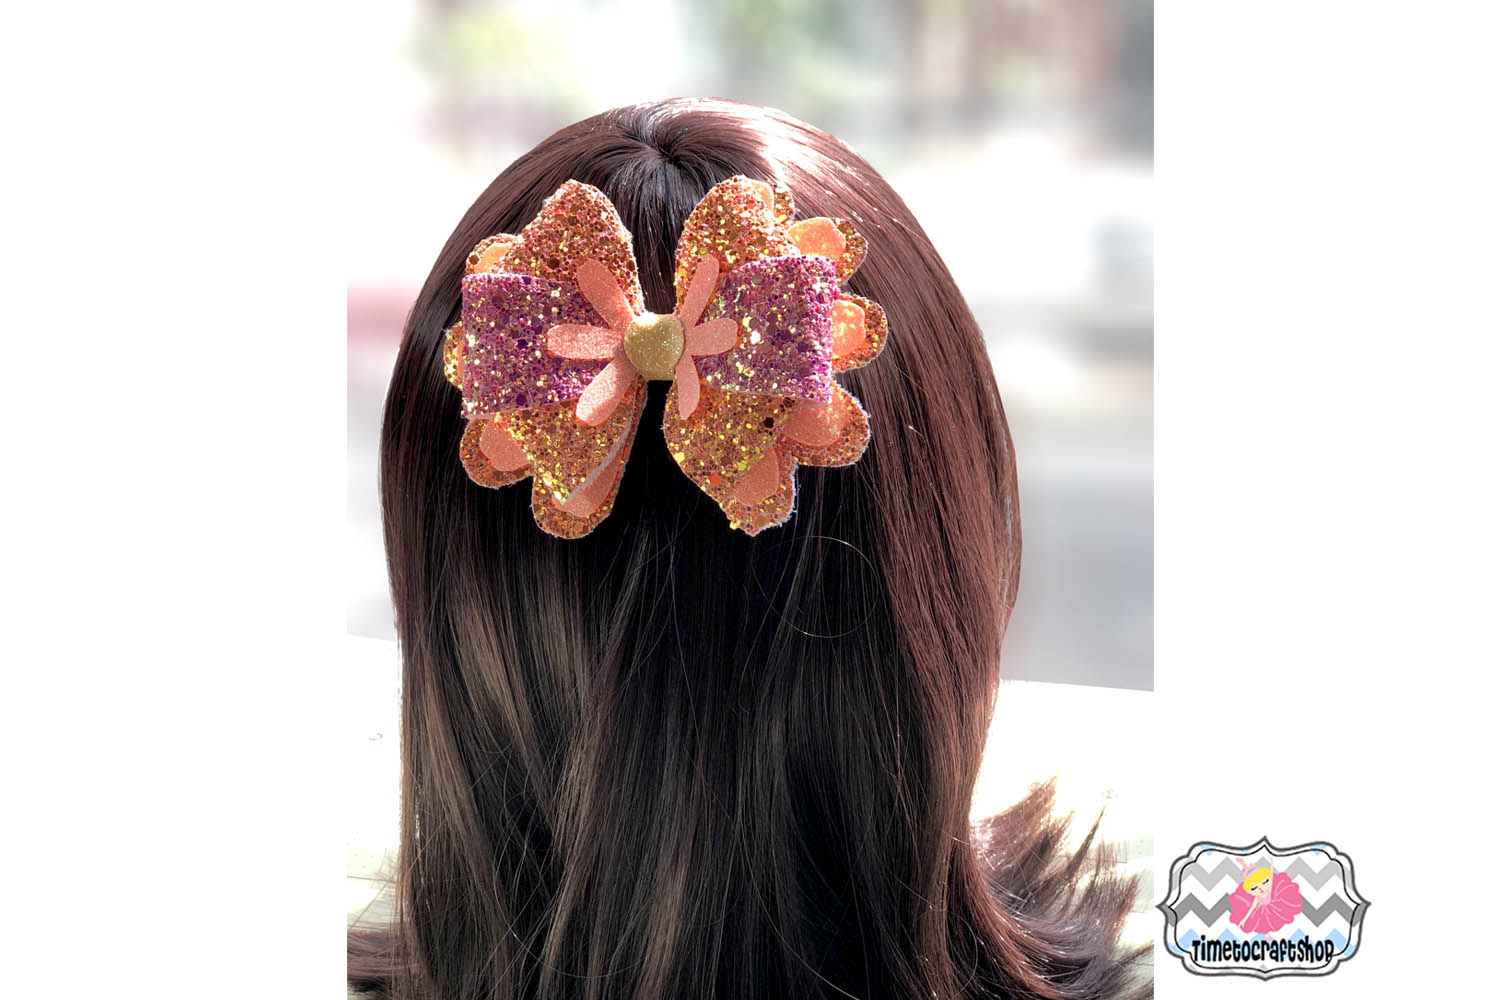 3D Daisy Flower Hair Bow Template SVG, PNG, DXF, PDF, JPEG example image 2